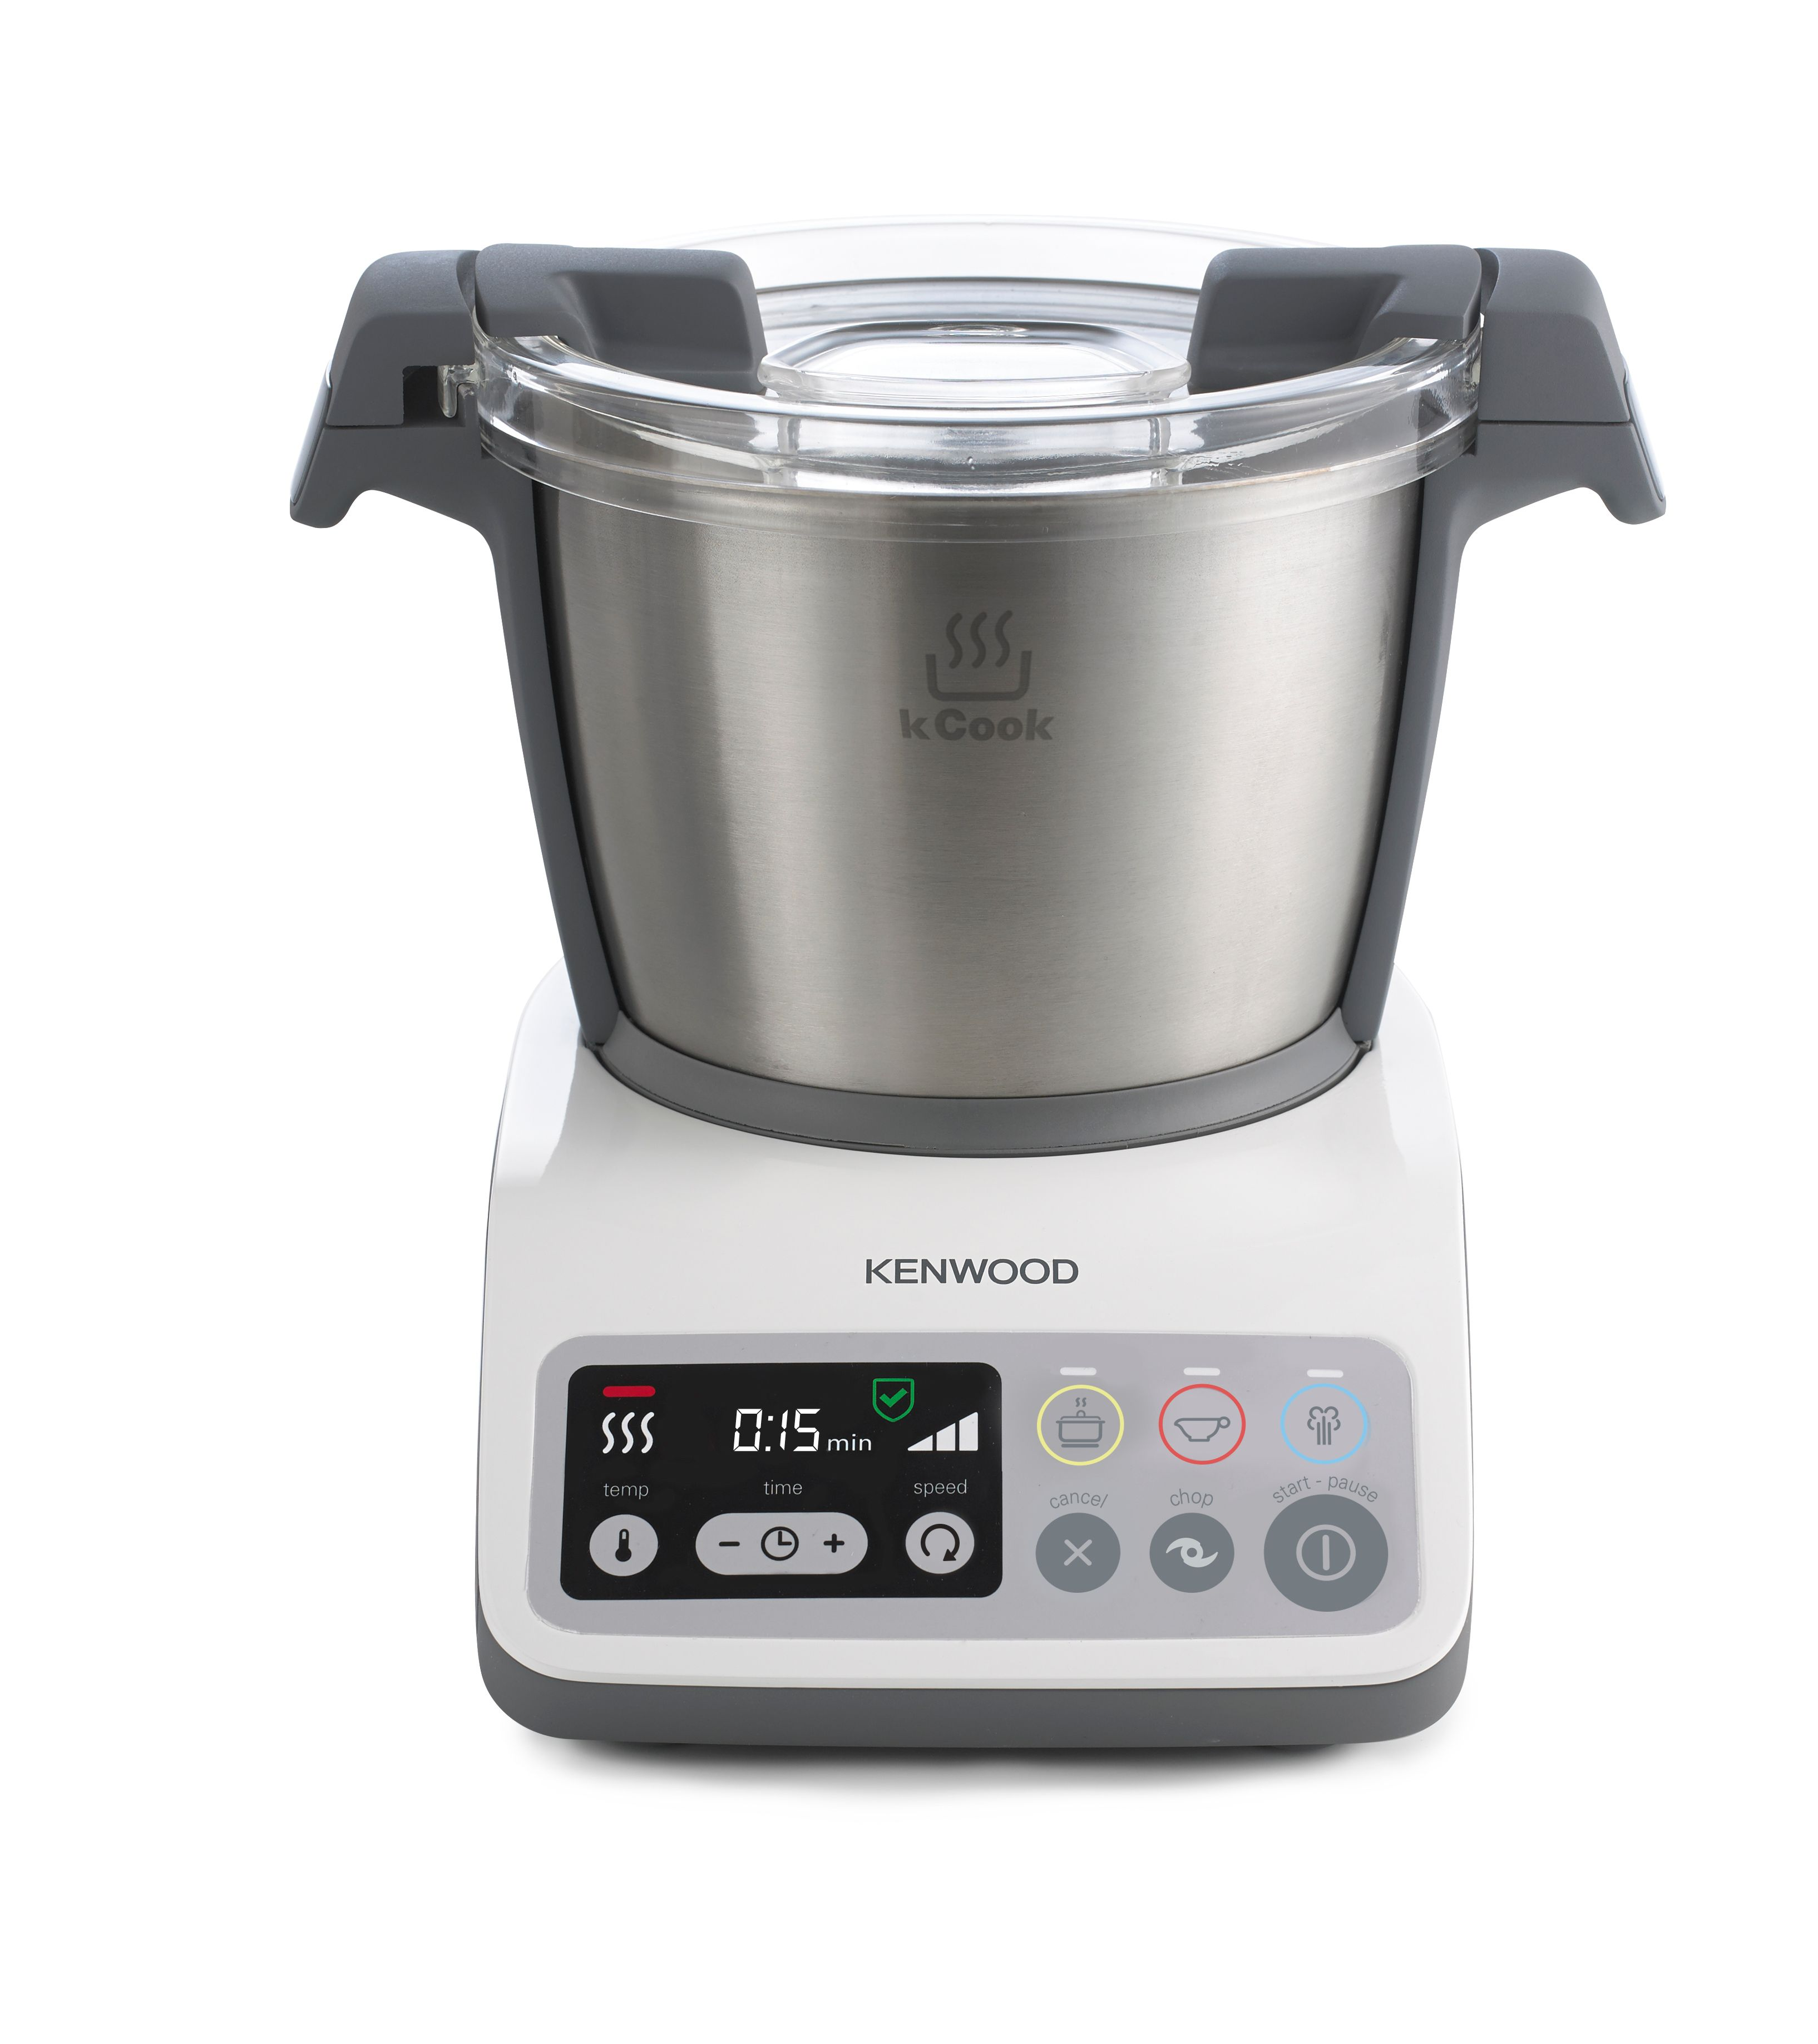 Kenwood Food Processor Compact Top 10 Cheapest Kenwood Compact Food Processor Prices